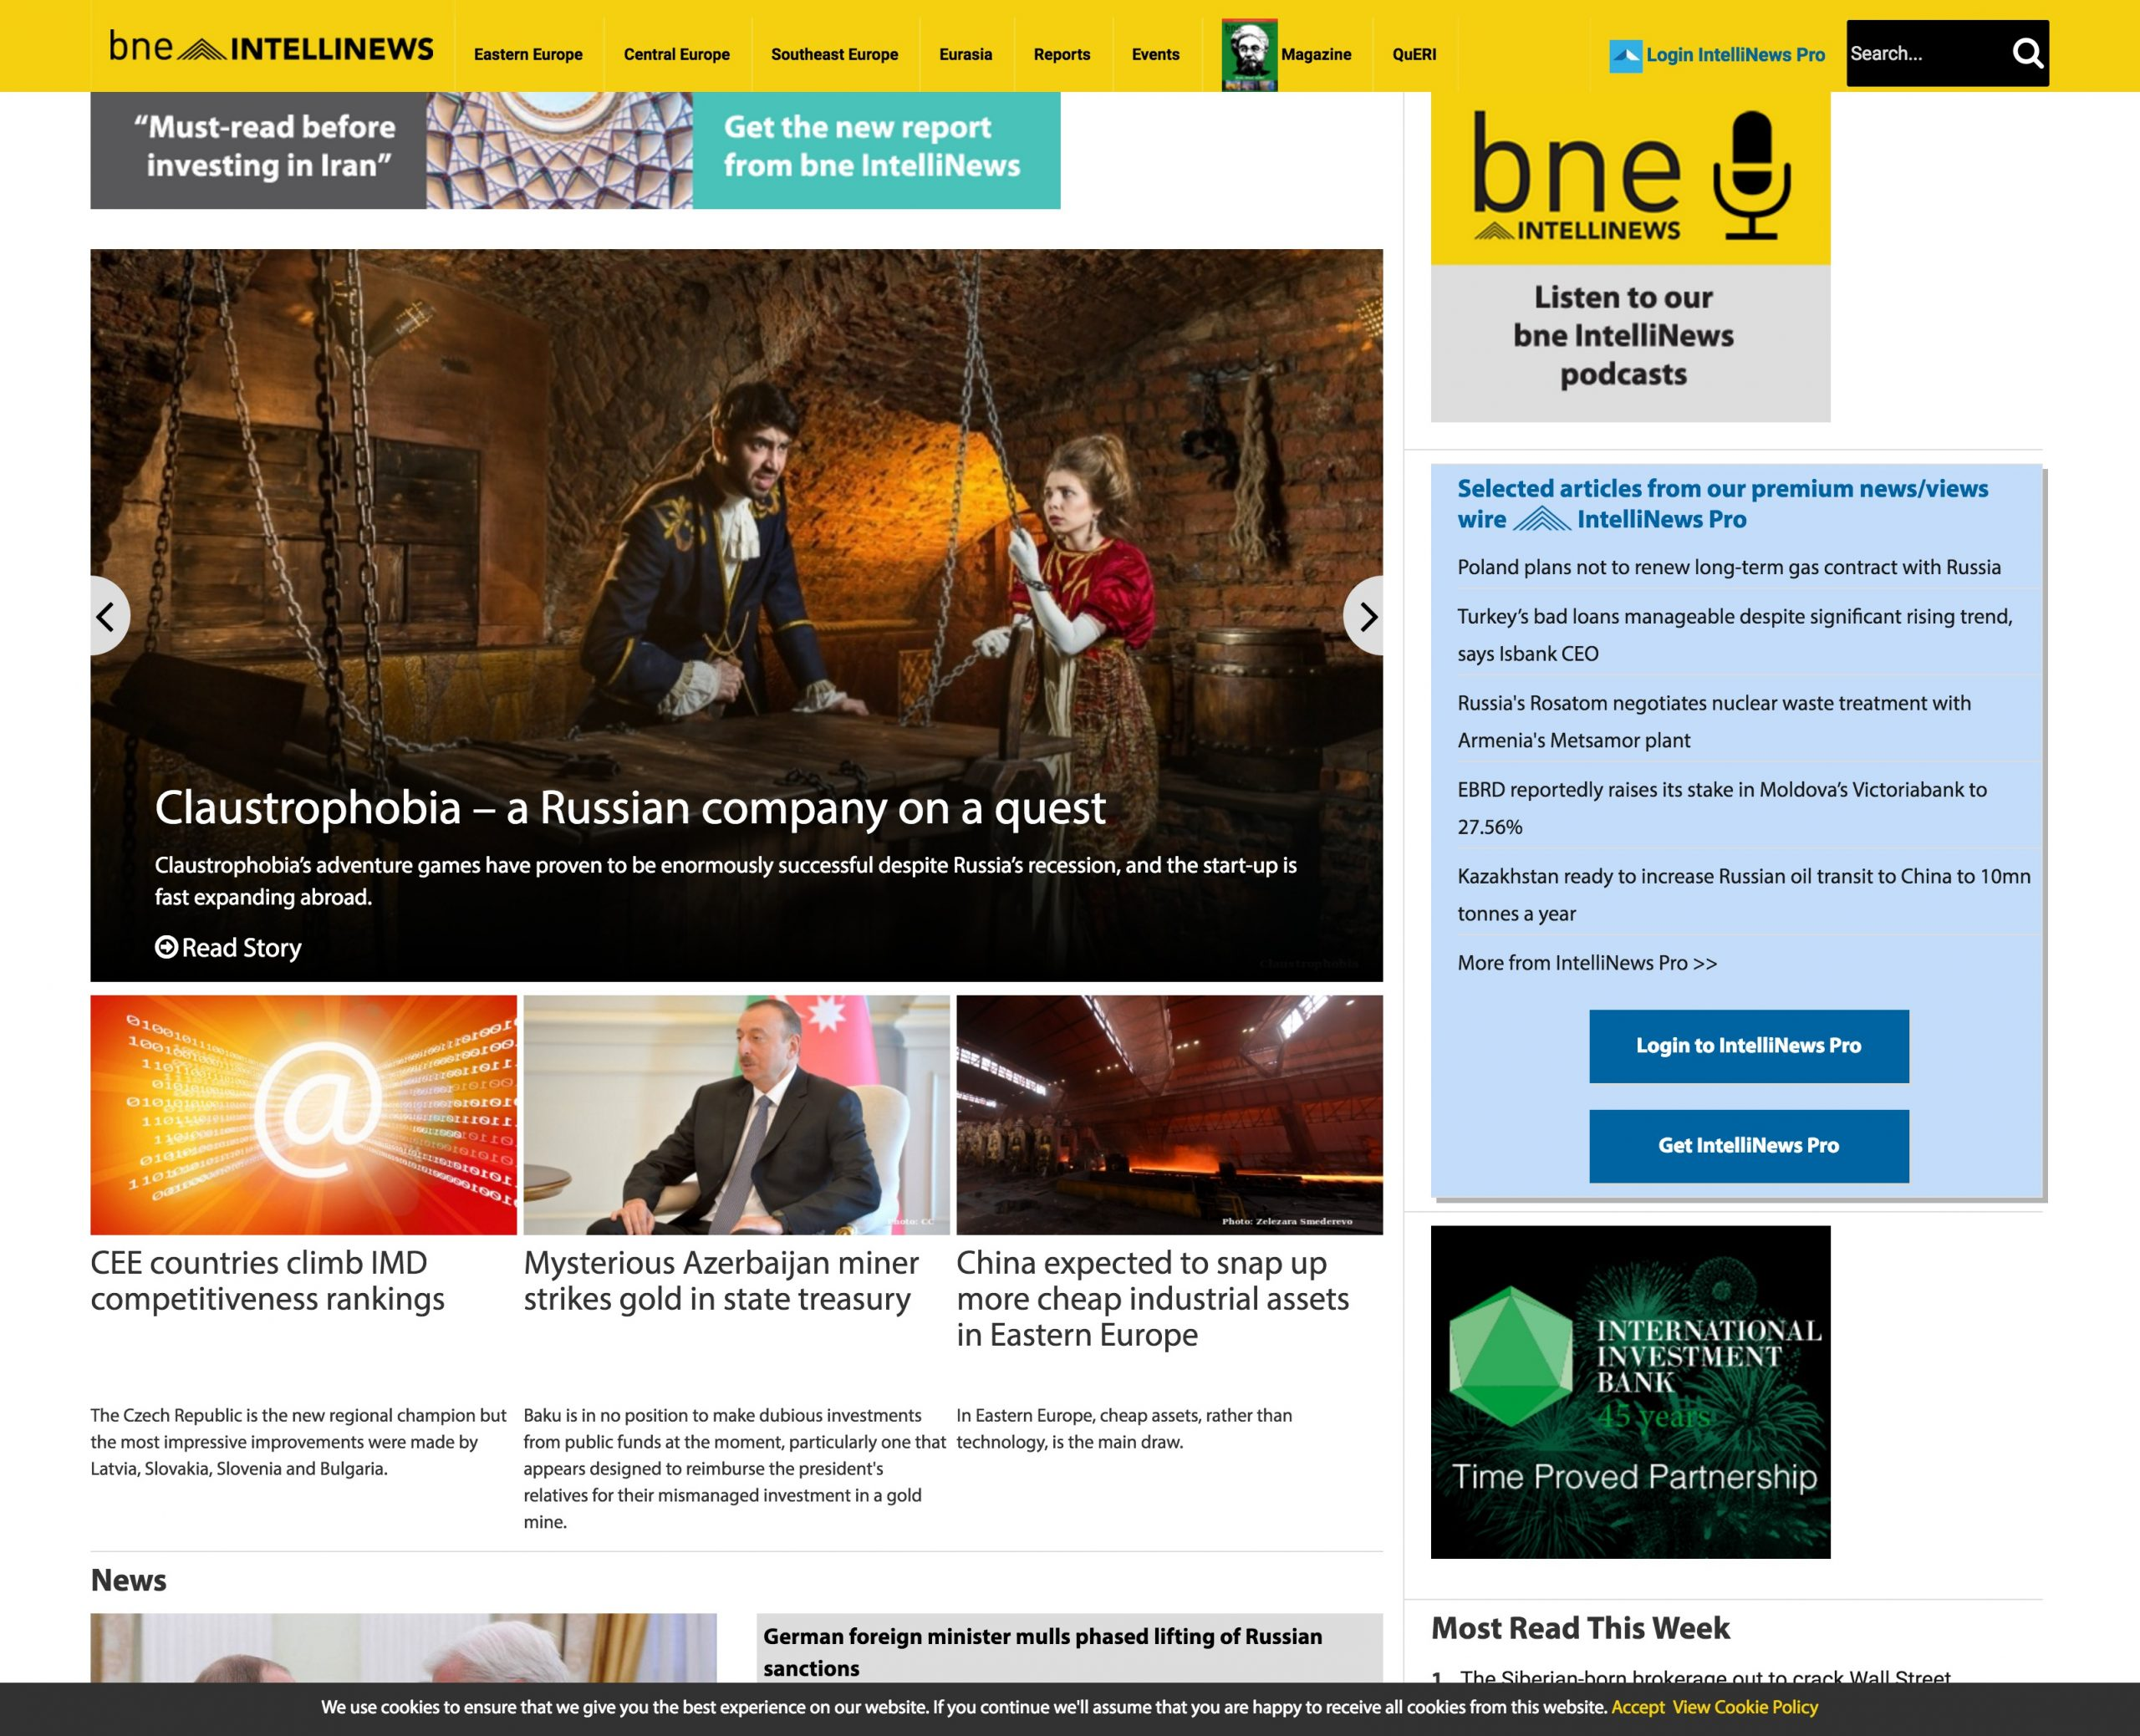 bne Intellinews